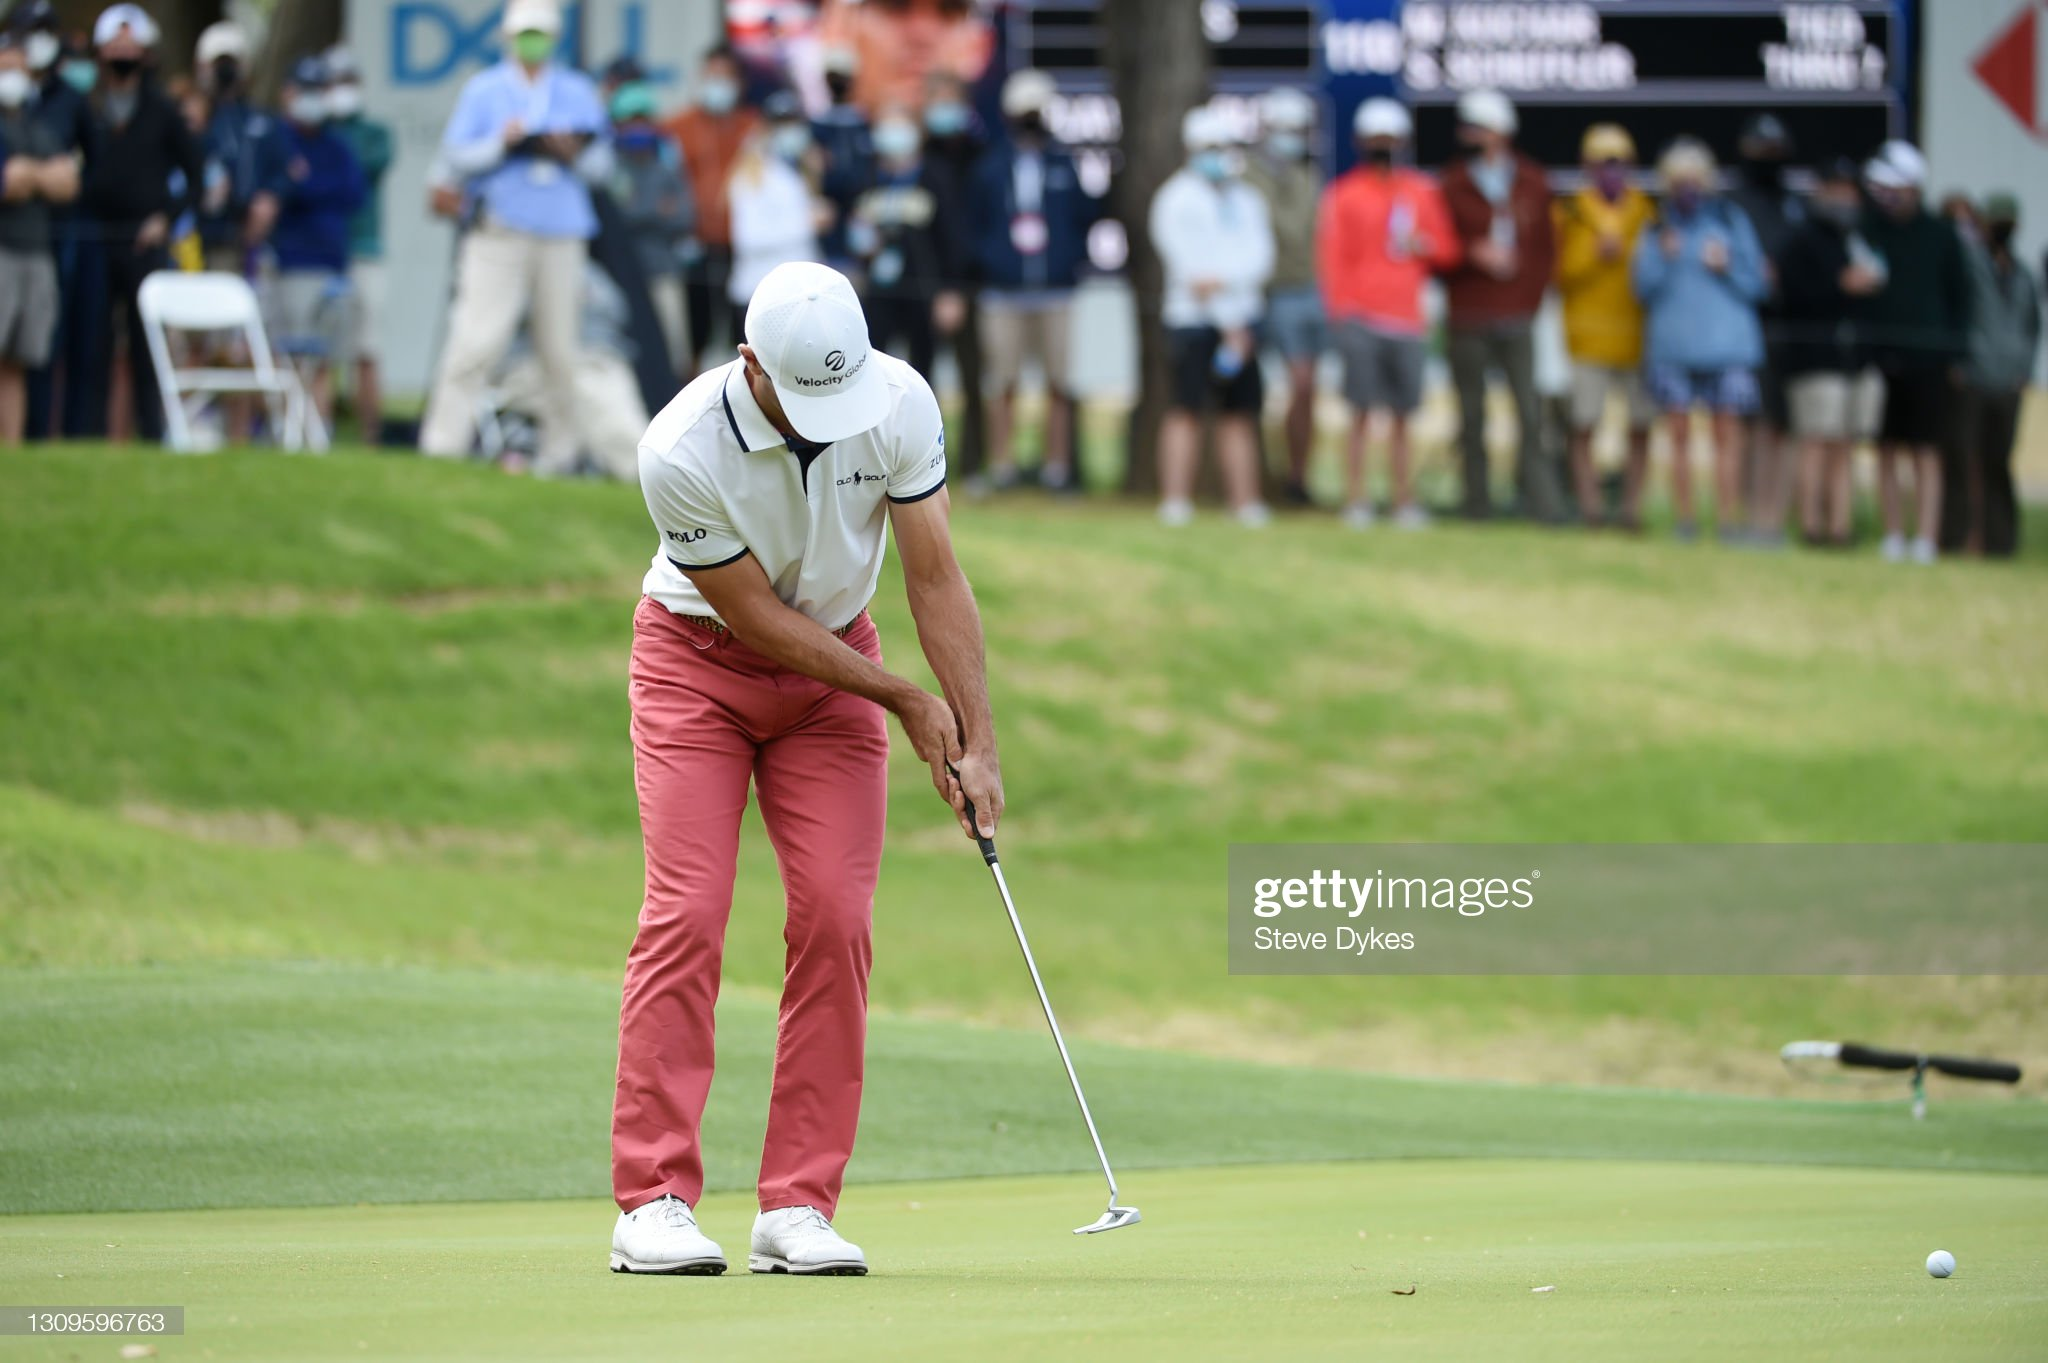 billy-horschel-of-the-united-states-miss